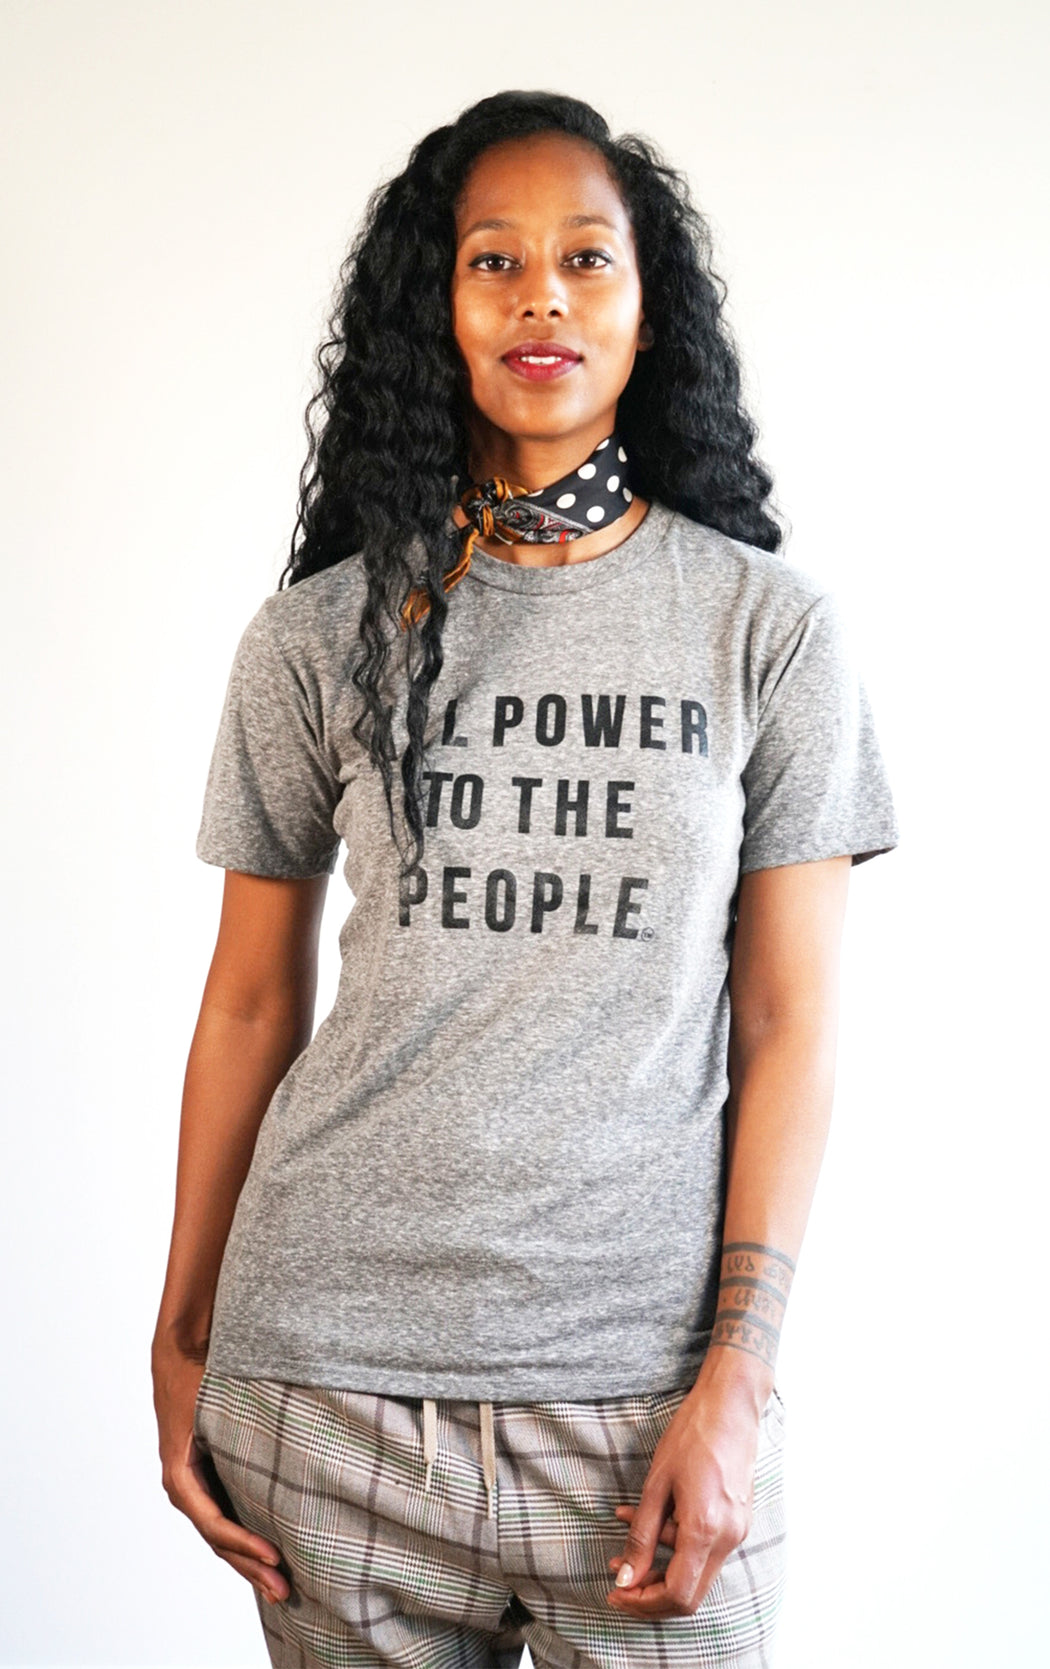 POWER TO THE PEOPLE Tshirt (HPN12)